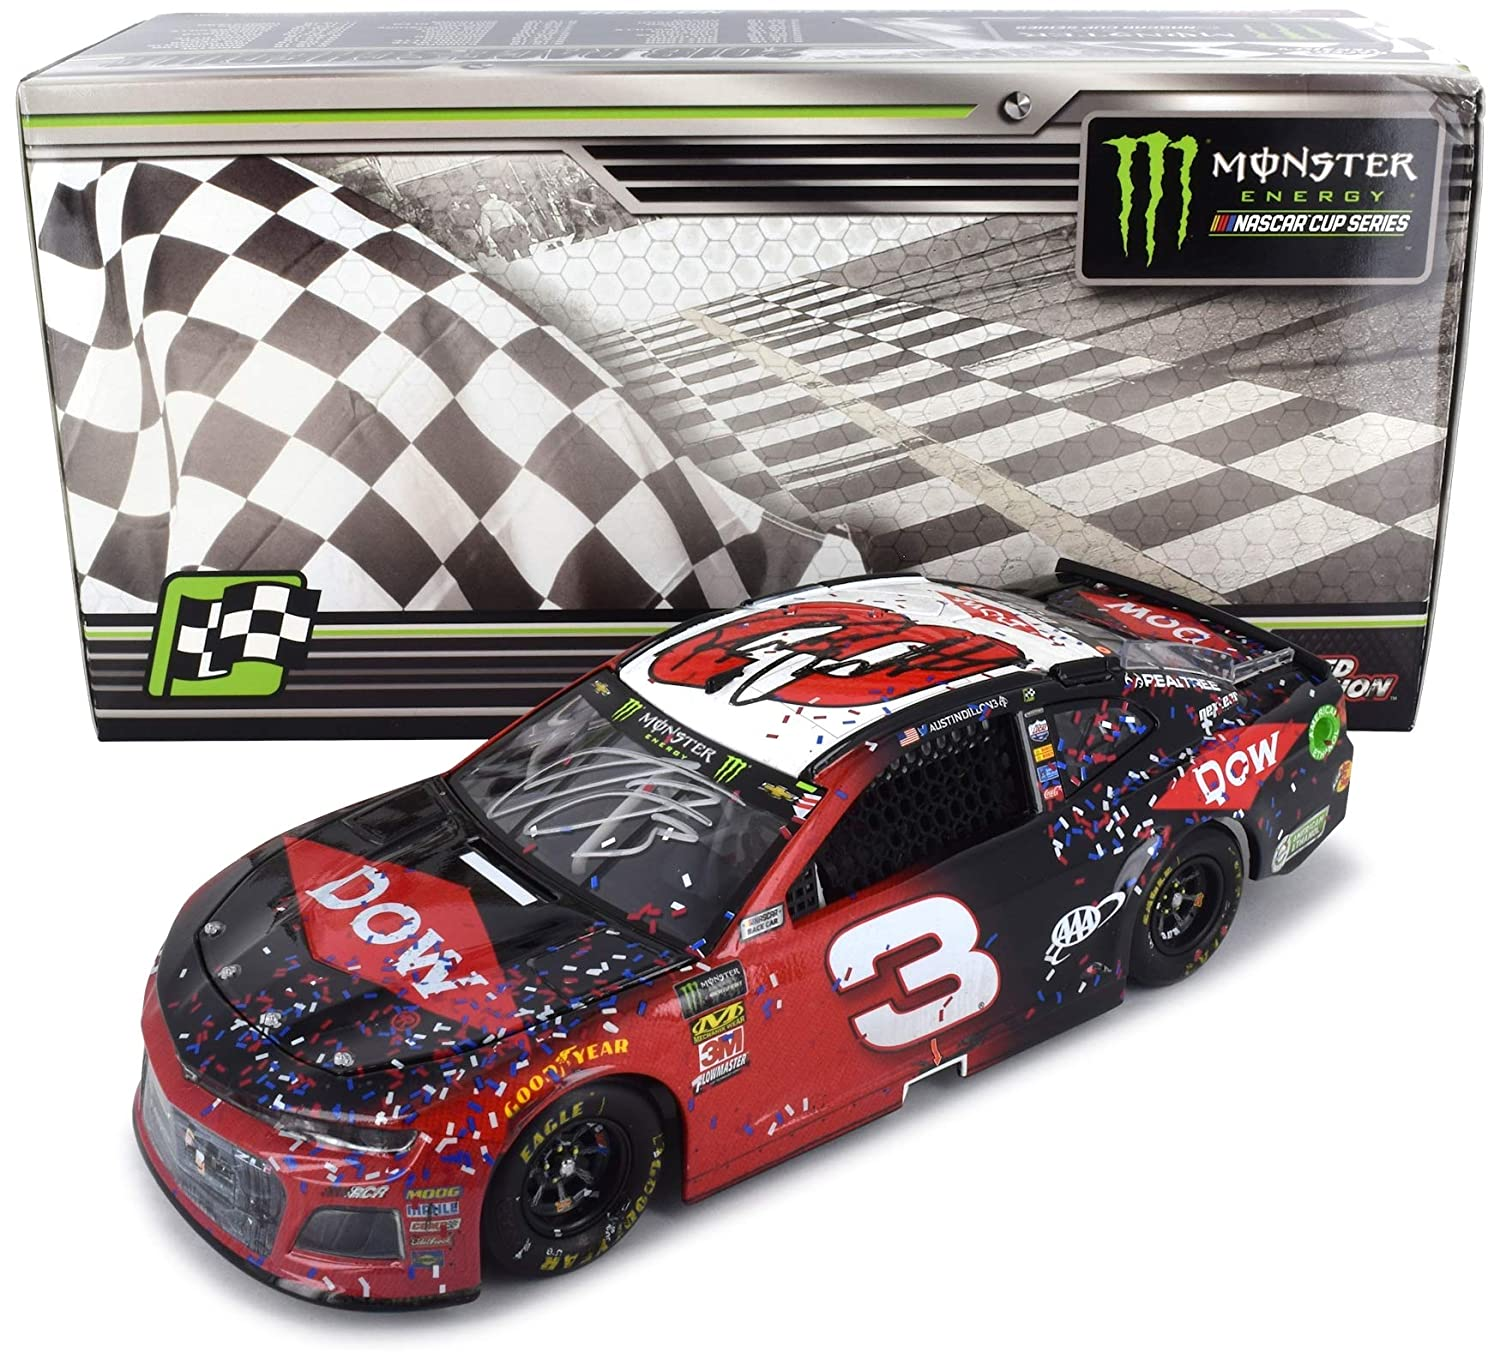 Lionel dual autographed austin dillon richard childress 2018 daytona 500 win raced version diecast car 124 hand signed with a certificate of authenticity